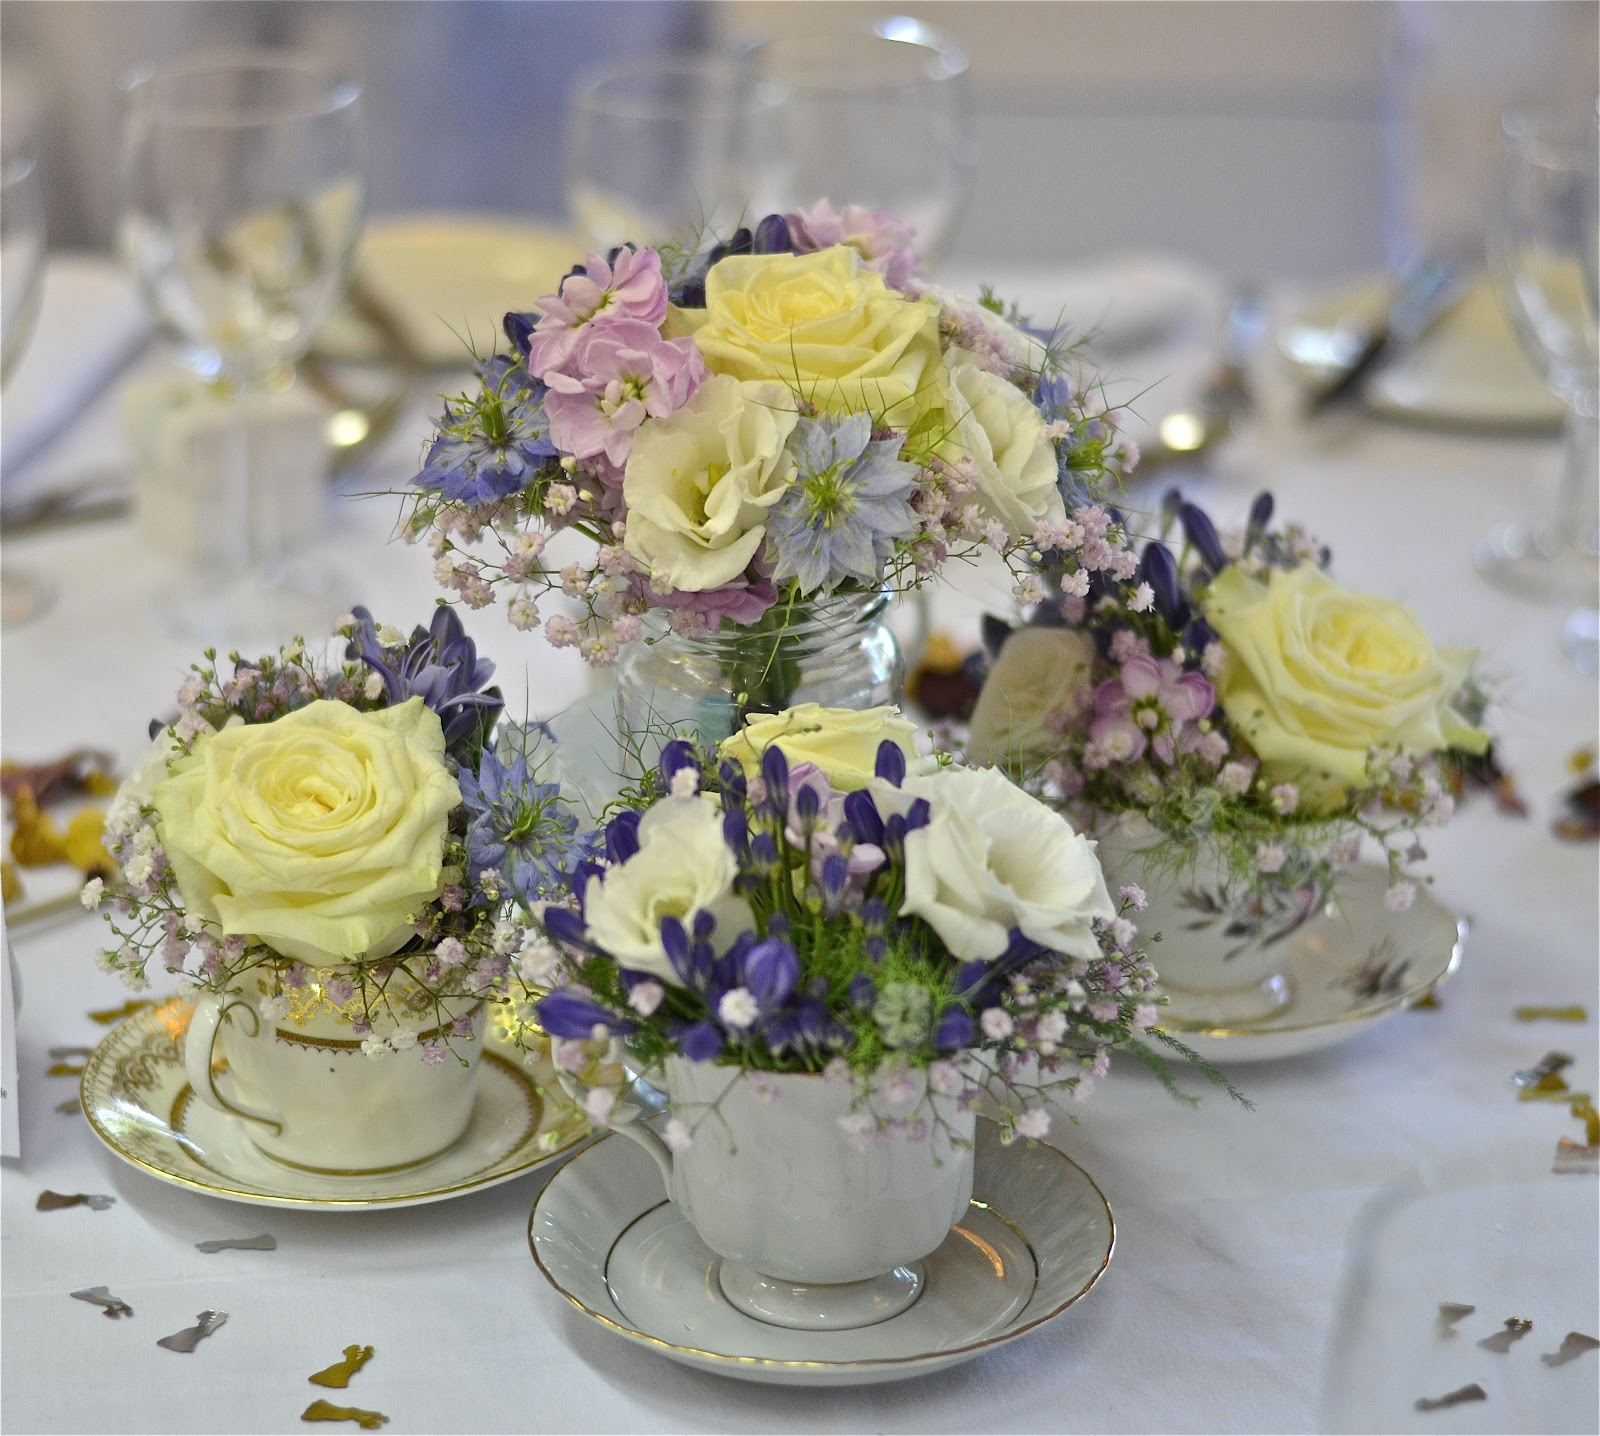 Country Wedding Ideas Flowers: Wedding Flowers Blog: Laura's Vintage, English Country